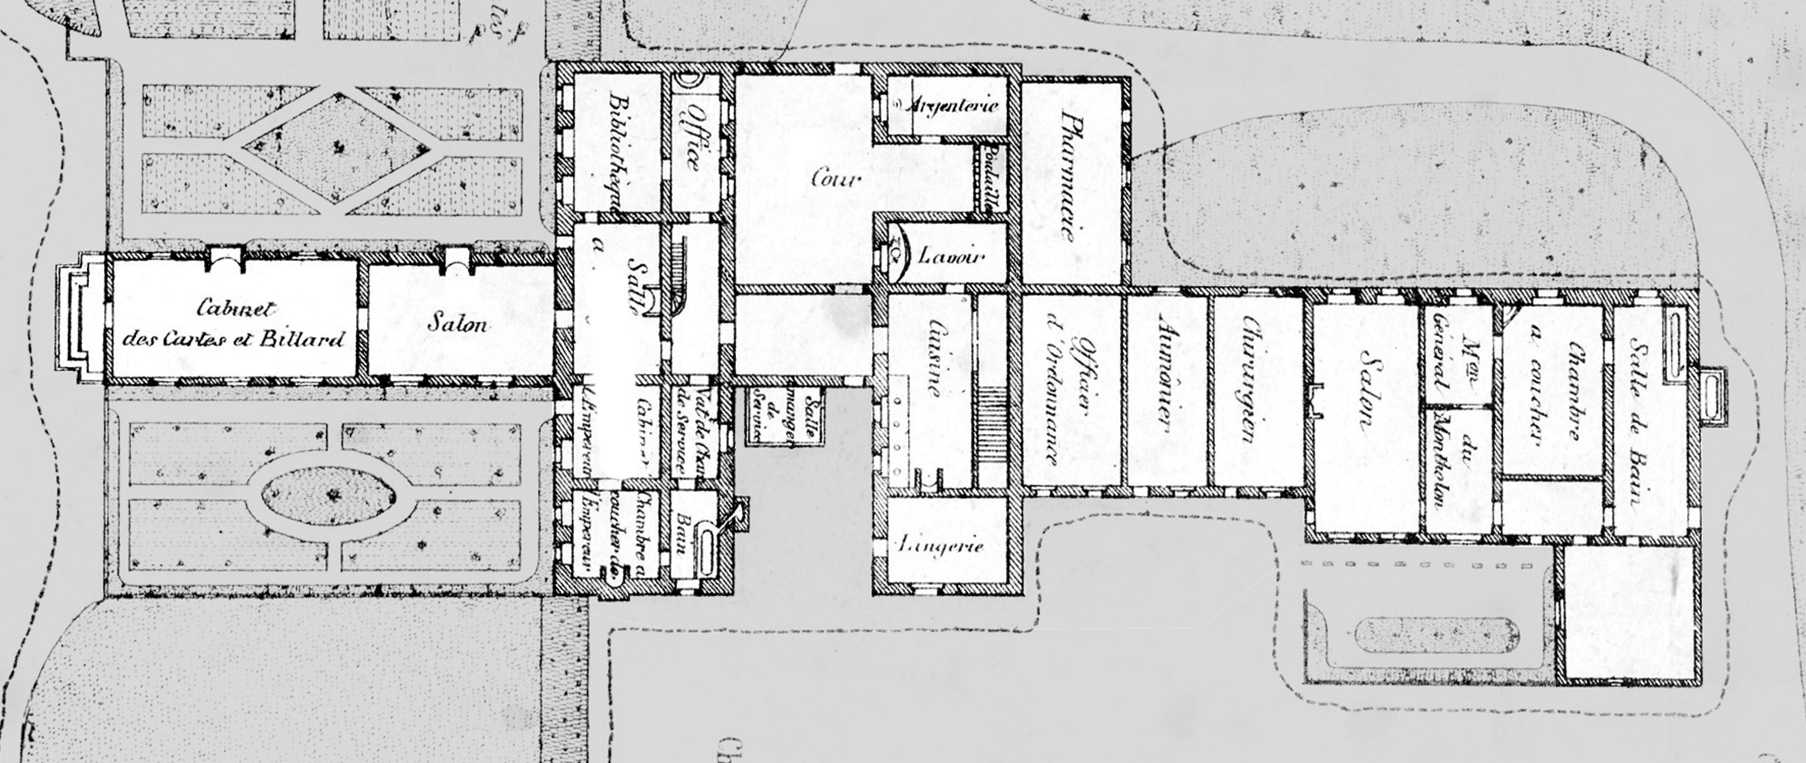 Internal plan of Longwood House